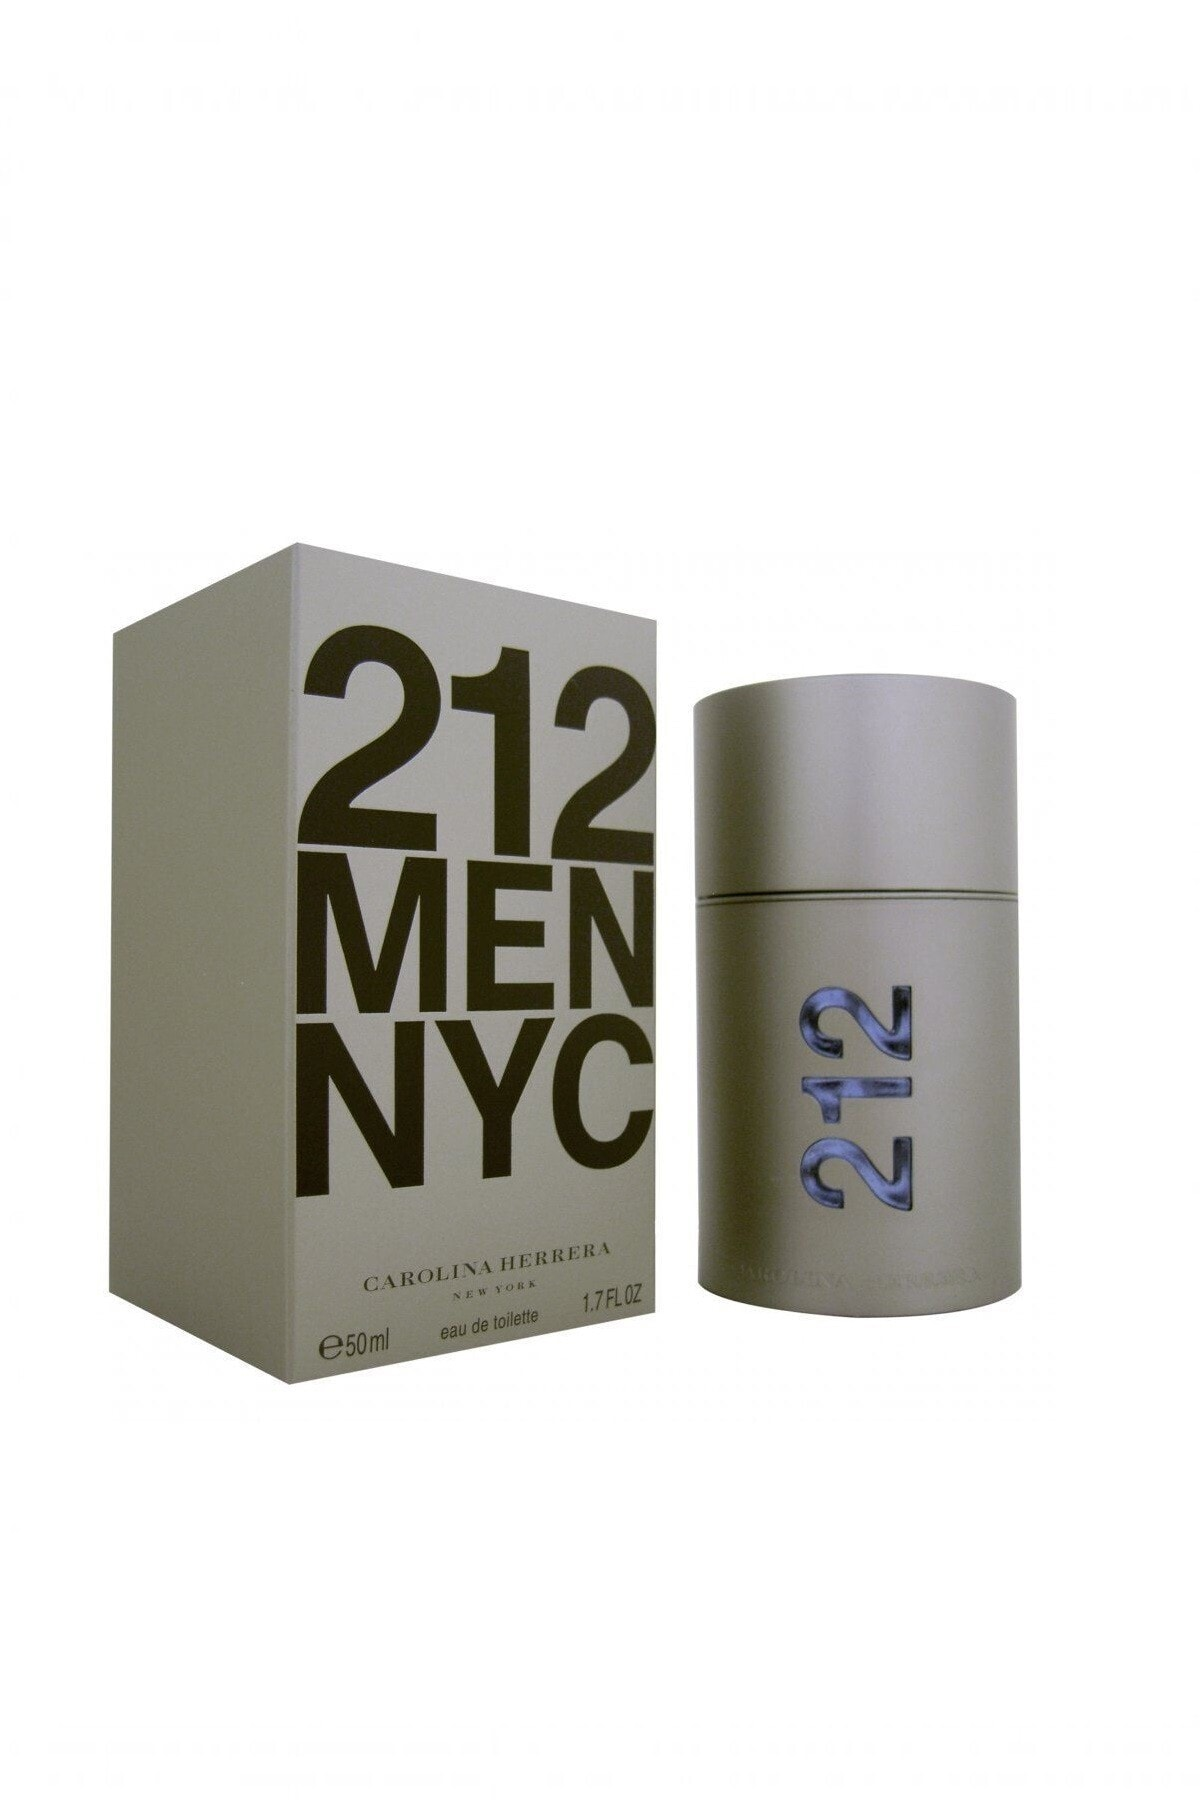 Carolina Herrera 212 Men Nyc Edt 50 ml Erkek Parfümü  8411061896259 1